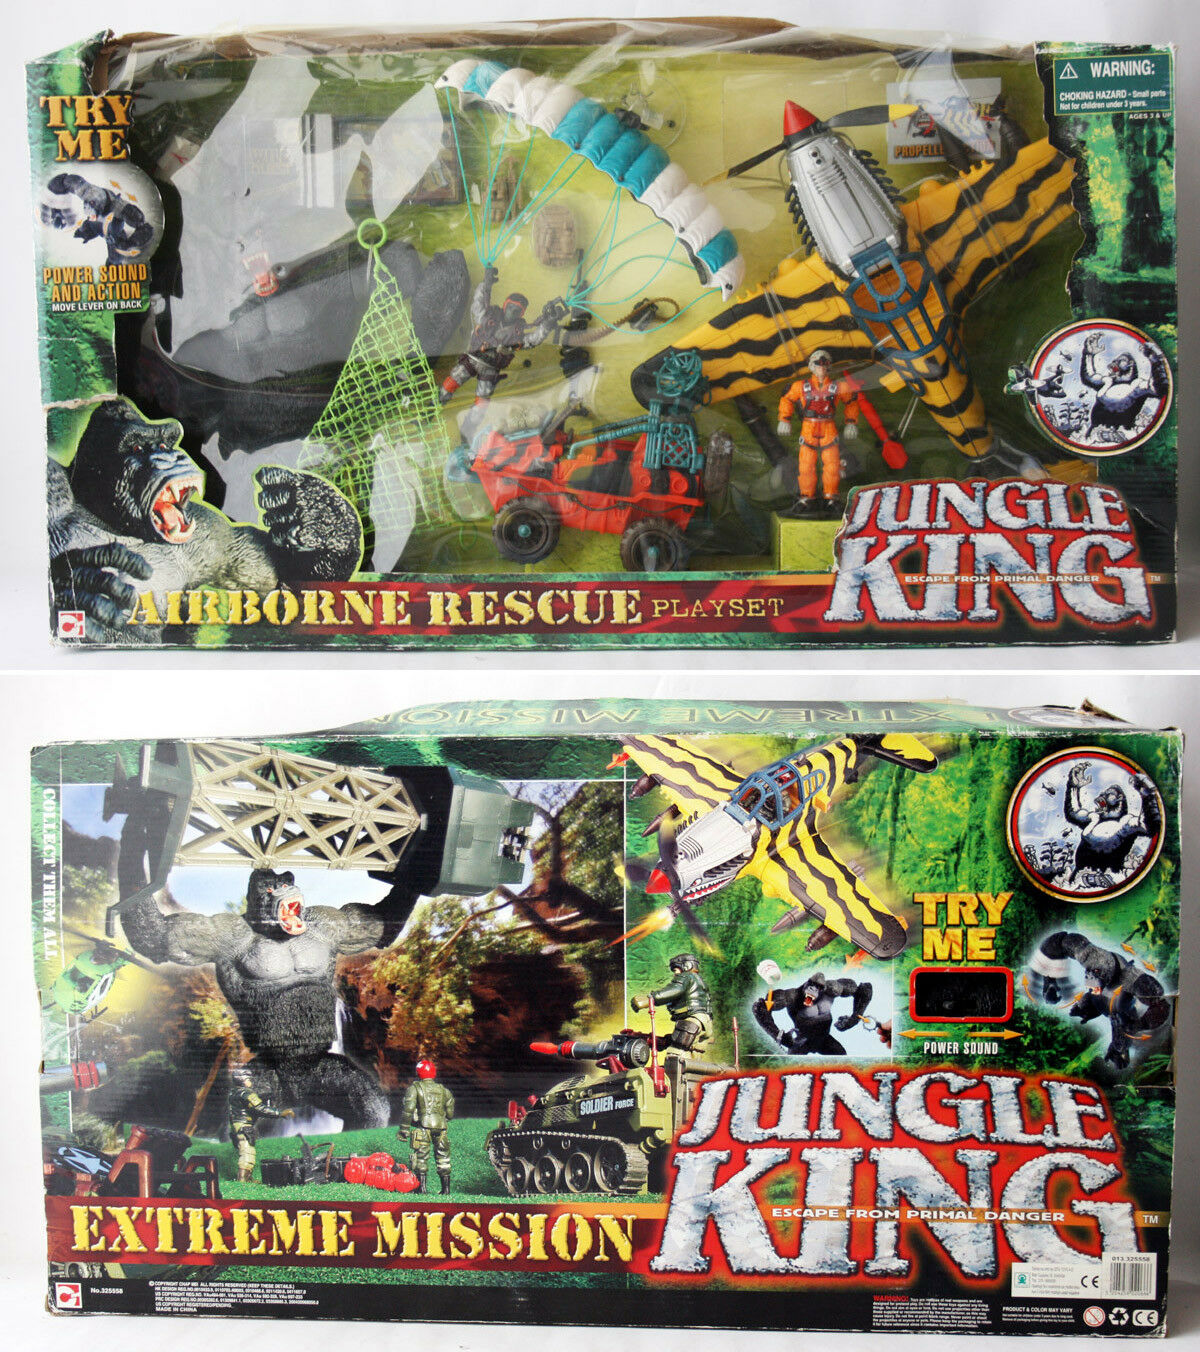 VERY RARE CHAP MEI JUNGLE KING AIRBORNE RESCUE PLAYSET GORILLA KONG NEW MIB